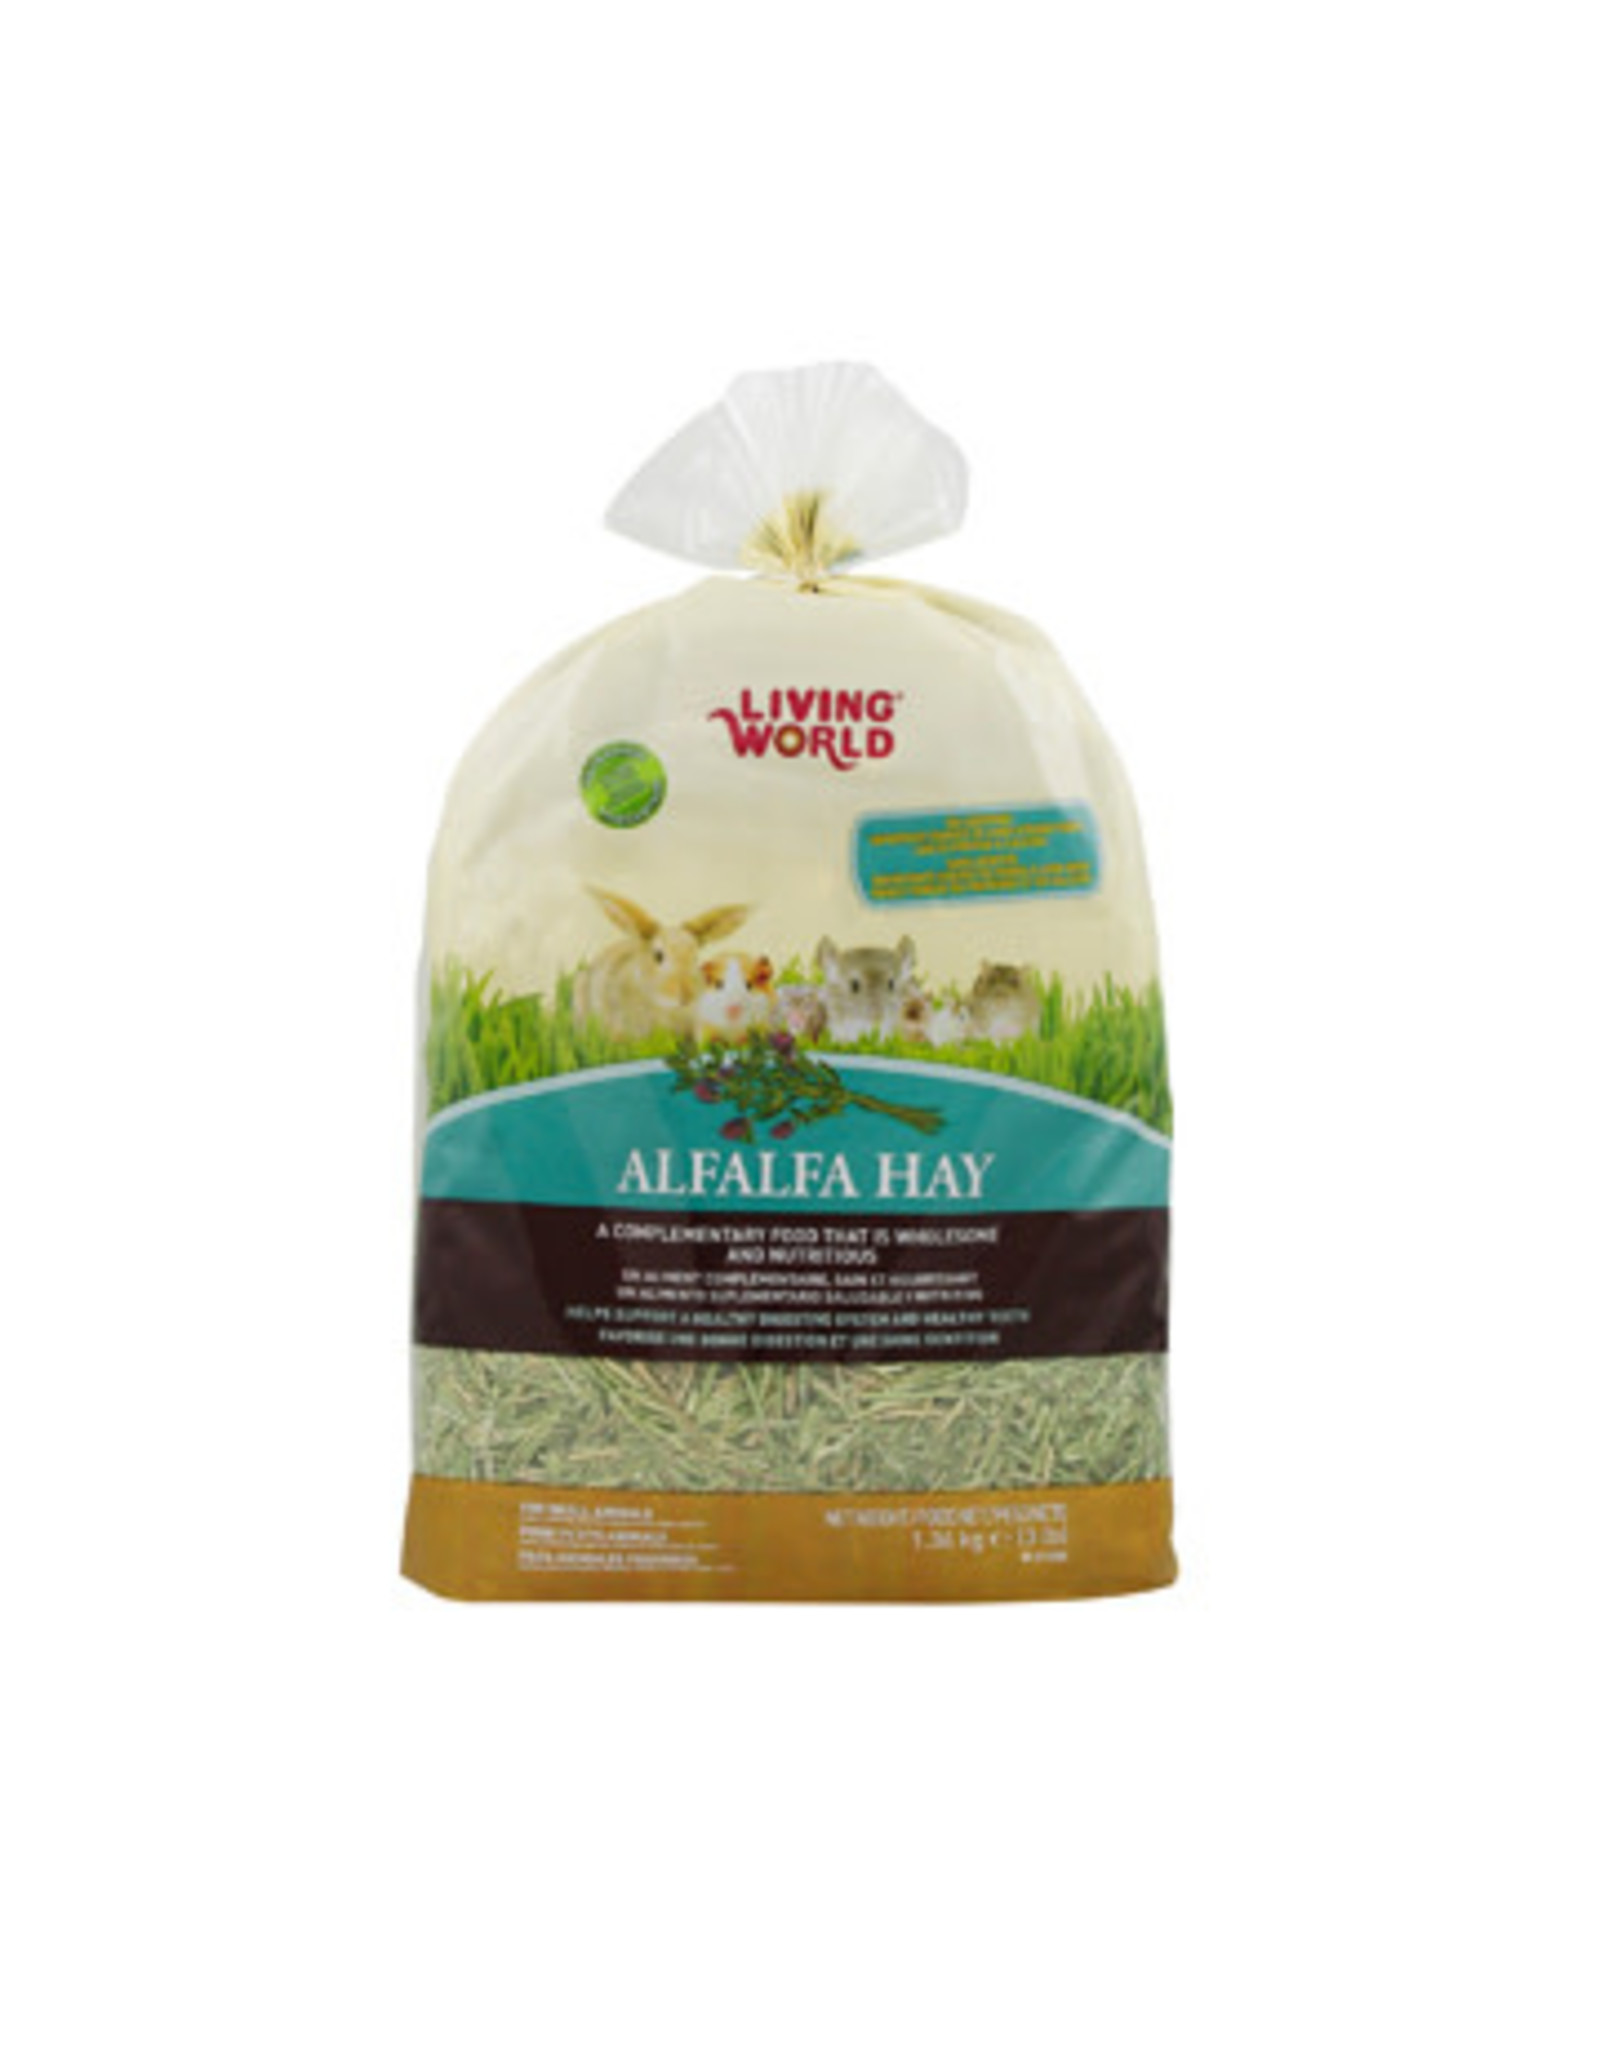 Living World Living World Alfalfa Hay - Extra Large - 1.36 kg (3 lb)